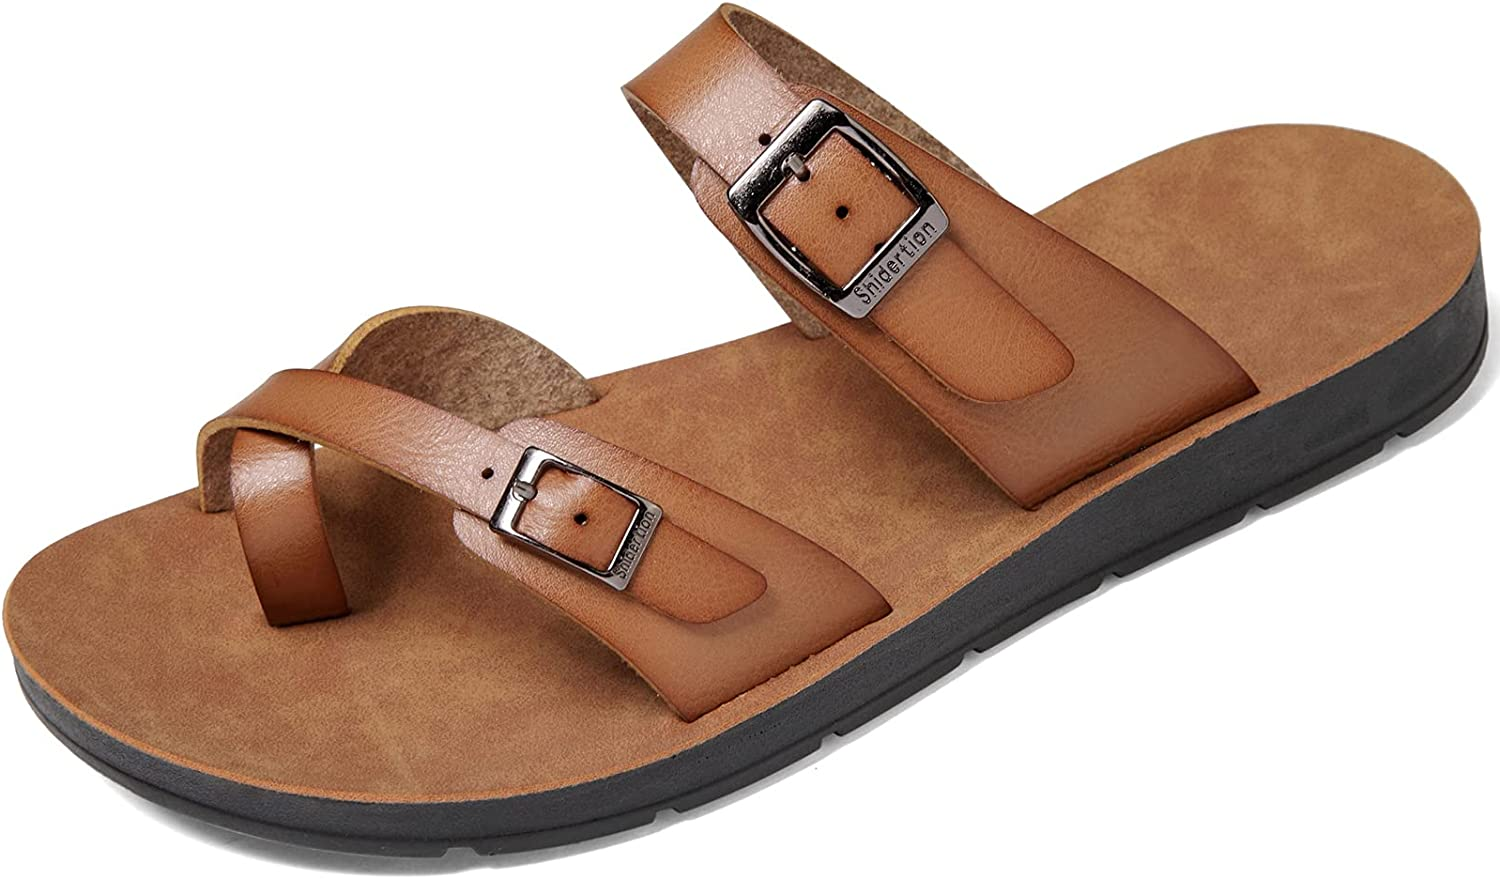 Womens Sandals with Adjustable Double Buckle Strap Casual Comfort Footbed Slides Sandals for Indoor and Outdoor Beach